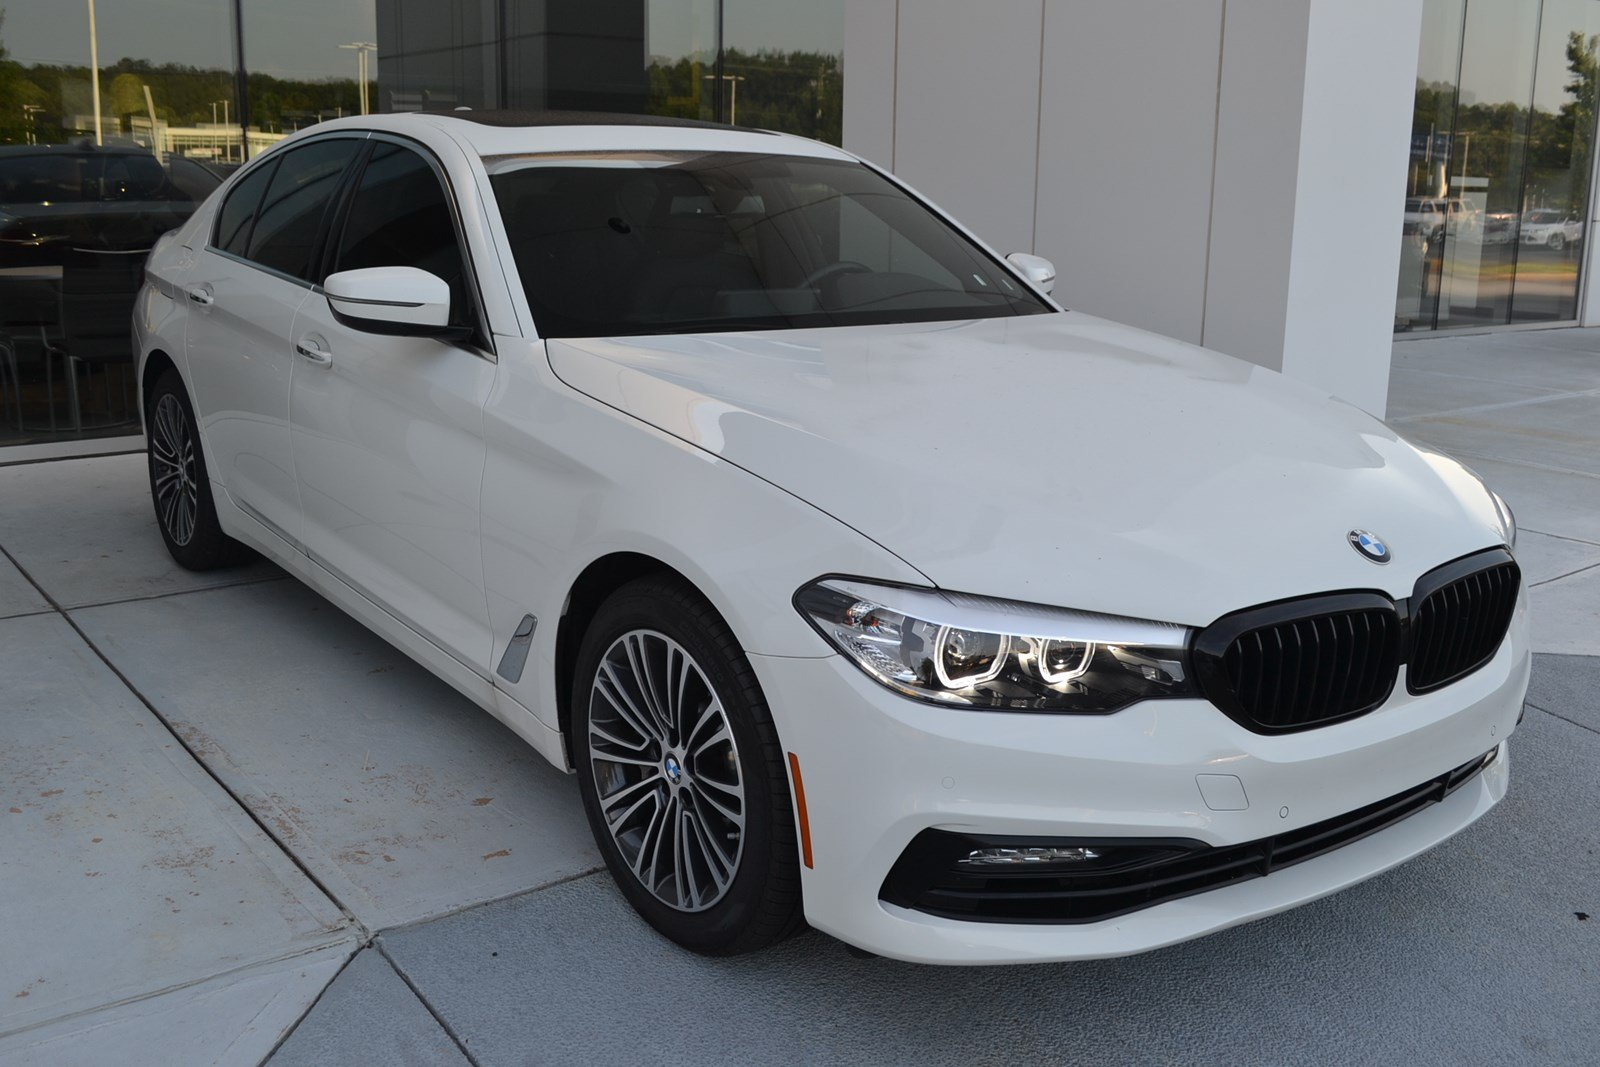 certified pre-owned 2018 bmw 5 series 530i 4dr car in macon #bu7748